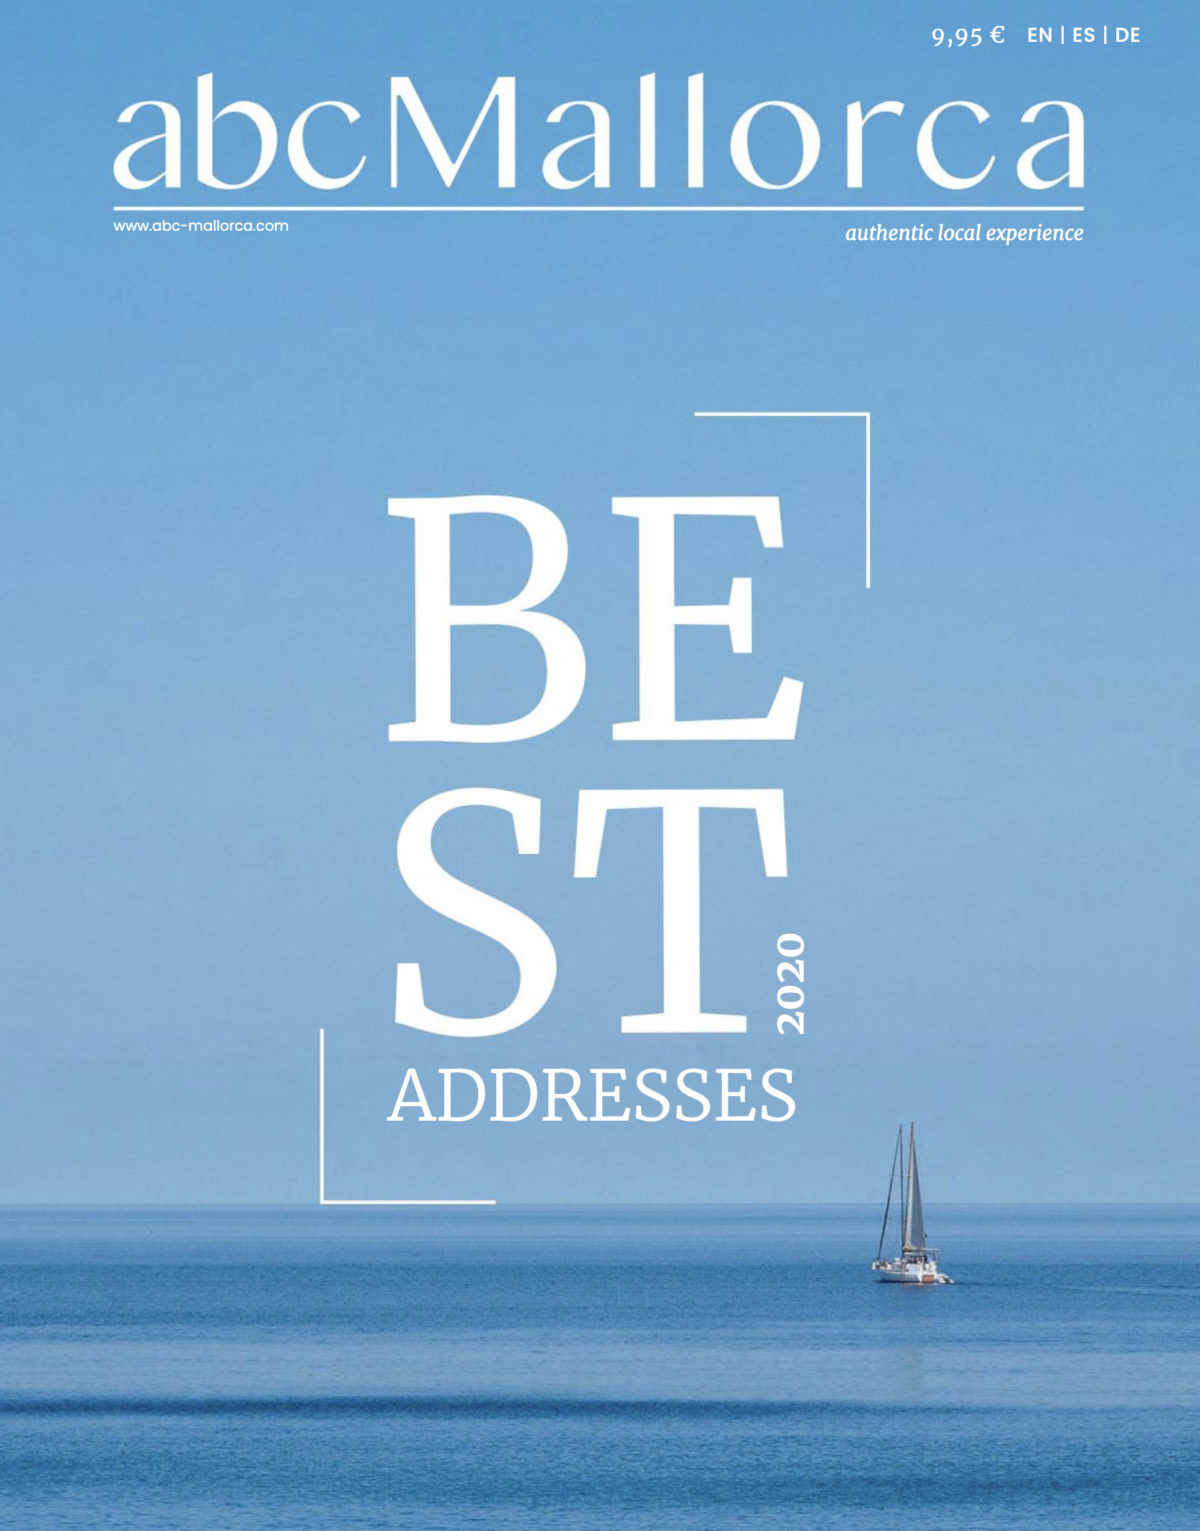 ABC Mallorca The Best Addresses of 2020 Cover